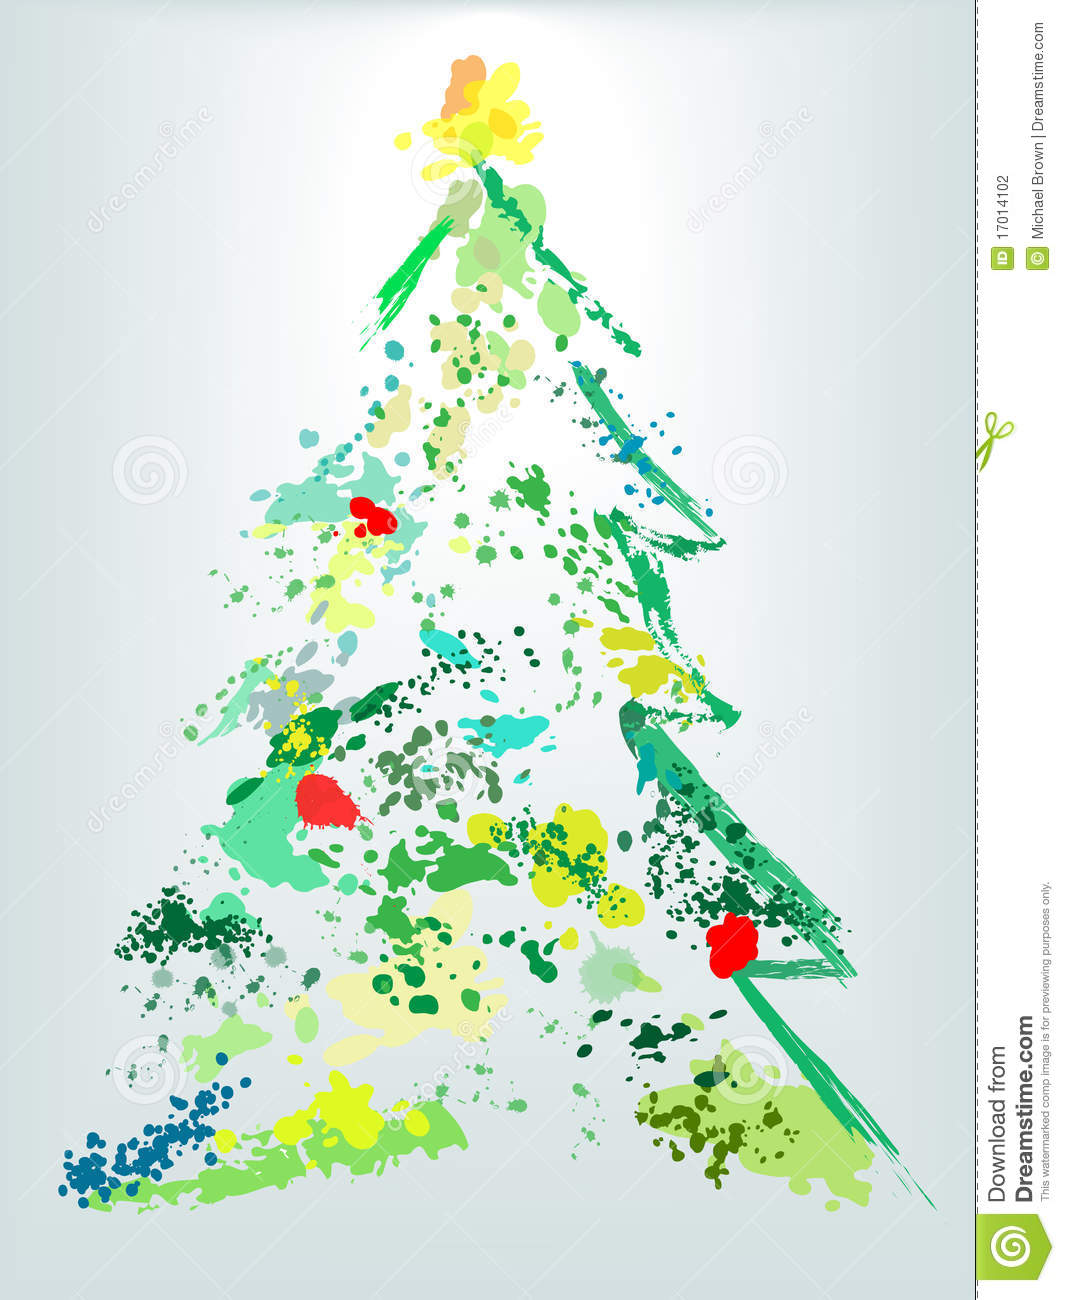 christmas tree holiday grunge paint splatter - How To Paint A Christmas Tree